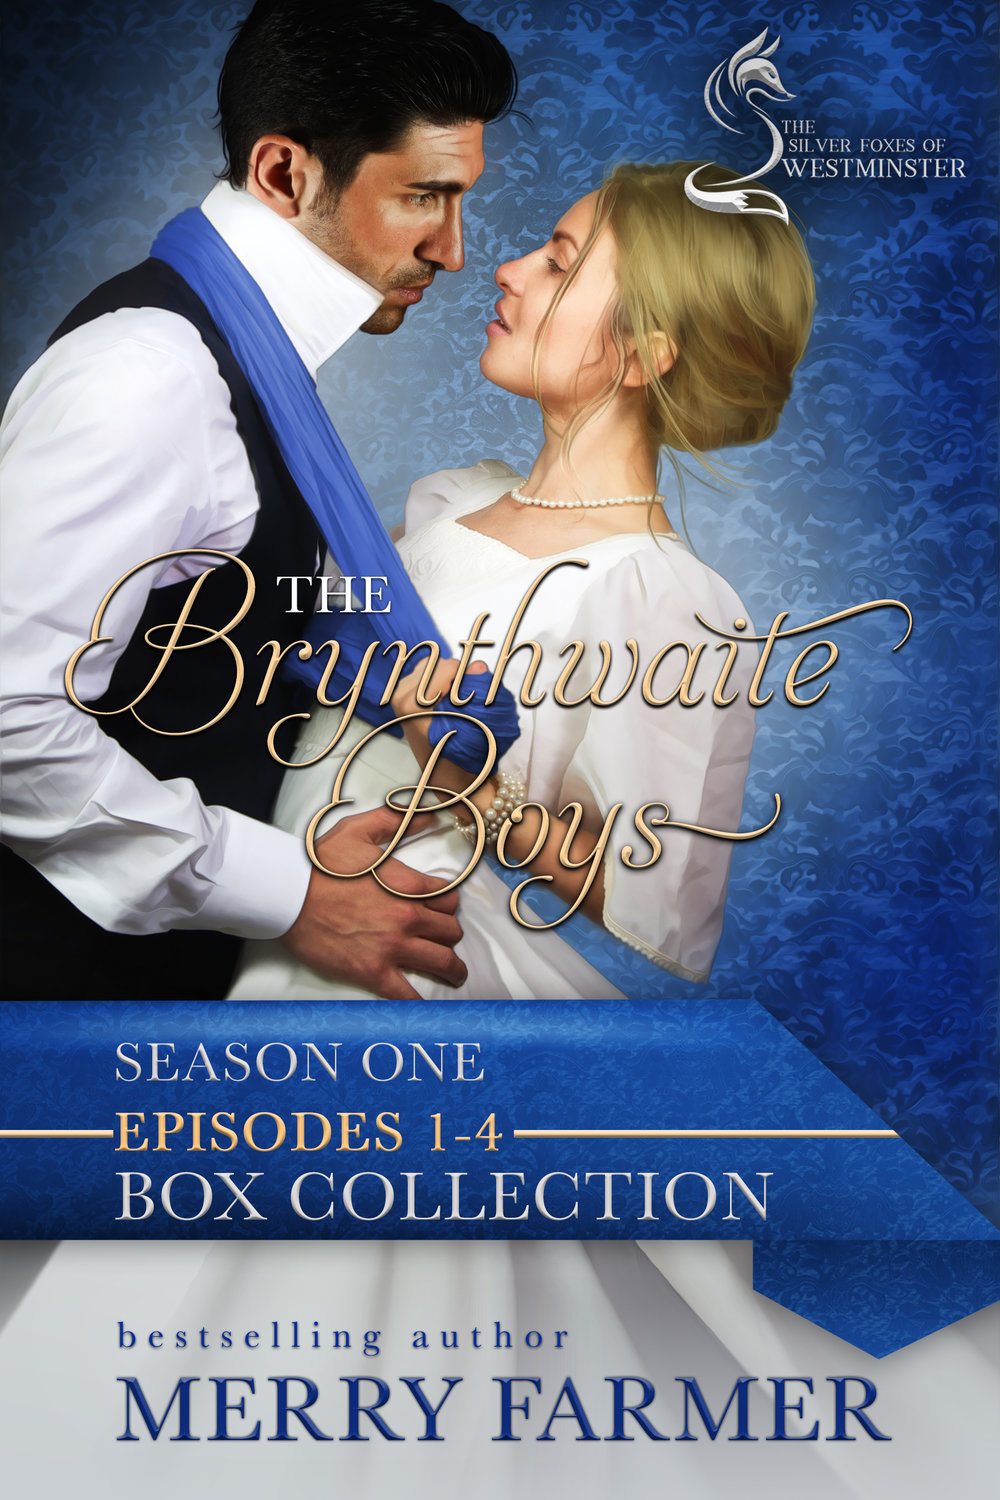 "The Brynthwaite BoysSeason One: Episodes 1-4 - Episode One – A Promising Start:After leaving Brynthwaite 15 years earlier, Jason Throckmorton has clawed his way to the top of the business world, making a name for himself as a hotelier. Now he is building a luxury hotel in Brynthwaite to draw wealthy tourists to the Lake District. But his real designs are on Lady Elizabeth, the woman he has obsessed about since he was a boy. Jason has a dark secret, though. But help comes in the form of the clever and insightful Flossie Stowe, a maid Jason hires to work in his hotel—a woman who harbors secrets of her own.Dr. Marshall Pycroft left Brynthwaite to become a doctor, making a name for himself in London. When Brynthwaite Municipal Orphanage was converted into Brynthwaite Hospital, he returned home to head it, taking his London wife and three daughters with him. Marshall has his hands full between the understaffed, under-funded hospital and his shrewish, overbearing wife. Until Dr. Alexandra Dyson, a lady in her own right as well as a qualified doctor, ask to work with him. But Alexandra's mother has other plans for her disobedient doctor—plans that could land the hospital in hot water.Lawrence Smith never truly left Brynthwaite. As the local blacksmith, he plays a pivotal role in town, but as a well-known hedonist and reputed practitioner of old, pagan ways, he is both a subject of fascination and speculation. When a mysterious woman arrives on his doorstep with no memory, speculation runs rampant. How long will it take before her past catches up to her and puts Lawrence in danger?Episode Two – A Dangerous Corner:Still without her memory, Matty begins to adjust to Lawrence and the forge. Though haunted bits of her past assail her, she feels safe…but for how long?Alexandra has at last found a way to be happy in her new home in Brynthwaite. She and Marshall get along perfectly as colleagues at the hospital. But all that is threatened when Lady Charlotte suspects that Alex has deceived her. Meanwhile, Marshall has family problems of his own…problems that throw his entire family into chaos.At the hotel, Jason is beside himself as one thing after another goes wrong, and all when Lady Elizabeth is only minutes away from paying him a visit. Flossie is quick to find solutions to each problem the hotel faces, but in doing so, she creates a problem that Jason might not be able to fix.Episode Three – A Difficult Decision:As Brynthwaite expresses its condolences to Marshall, a new threat looms on the horizon which could put his grieving family in greater danger. Alexandra is able to fill in for him at the hospital, but her mother announces plans that promise to throw her into romantic turmoil…Jason shares the secret of his mysterious illness with Lawrence, but when Flossie overhears his confession, she is presented with an opportunity that could either save her or damn her…Lawrence may have vowed to keep Matty safe, but his enemies in Brynthwaite have other plans for her…Episode Four – A Grand To-Do:All of Brynthwaite comes out in style for the Grand Opening of The Dragon's Head, but will Jason and Flossie be ready in time…A figure from Lawrence, Marshall, and Jason's past arrives with information that could spell disaster for Matty…Alexandra's mother attempts to draw her into romantic intrigue, but when Marshall comes to her rescue, he finds his heart on the line…PLEASE BE ADVISED: Some steamy content, but mostly what would be considered ""sophisticated situations"" (as my mom used to say)."